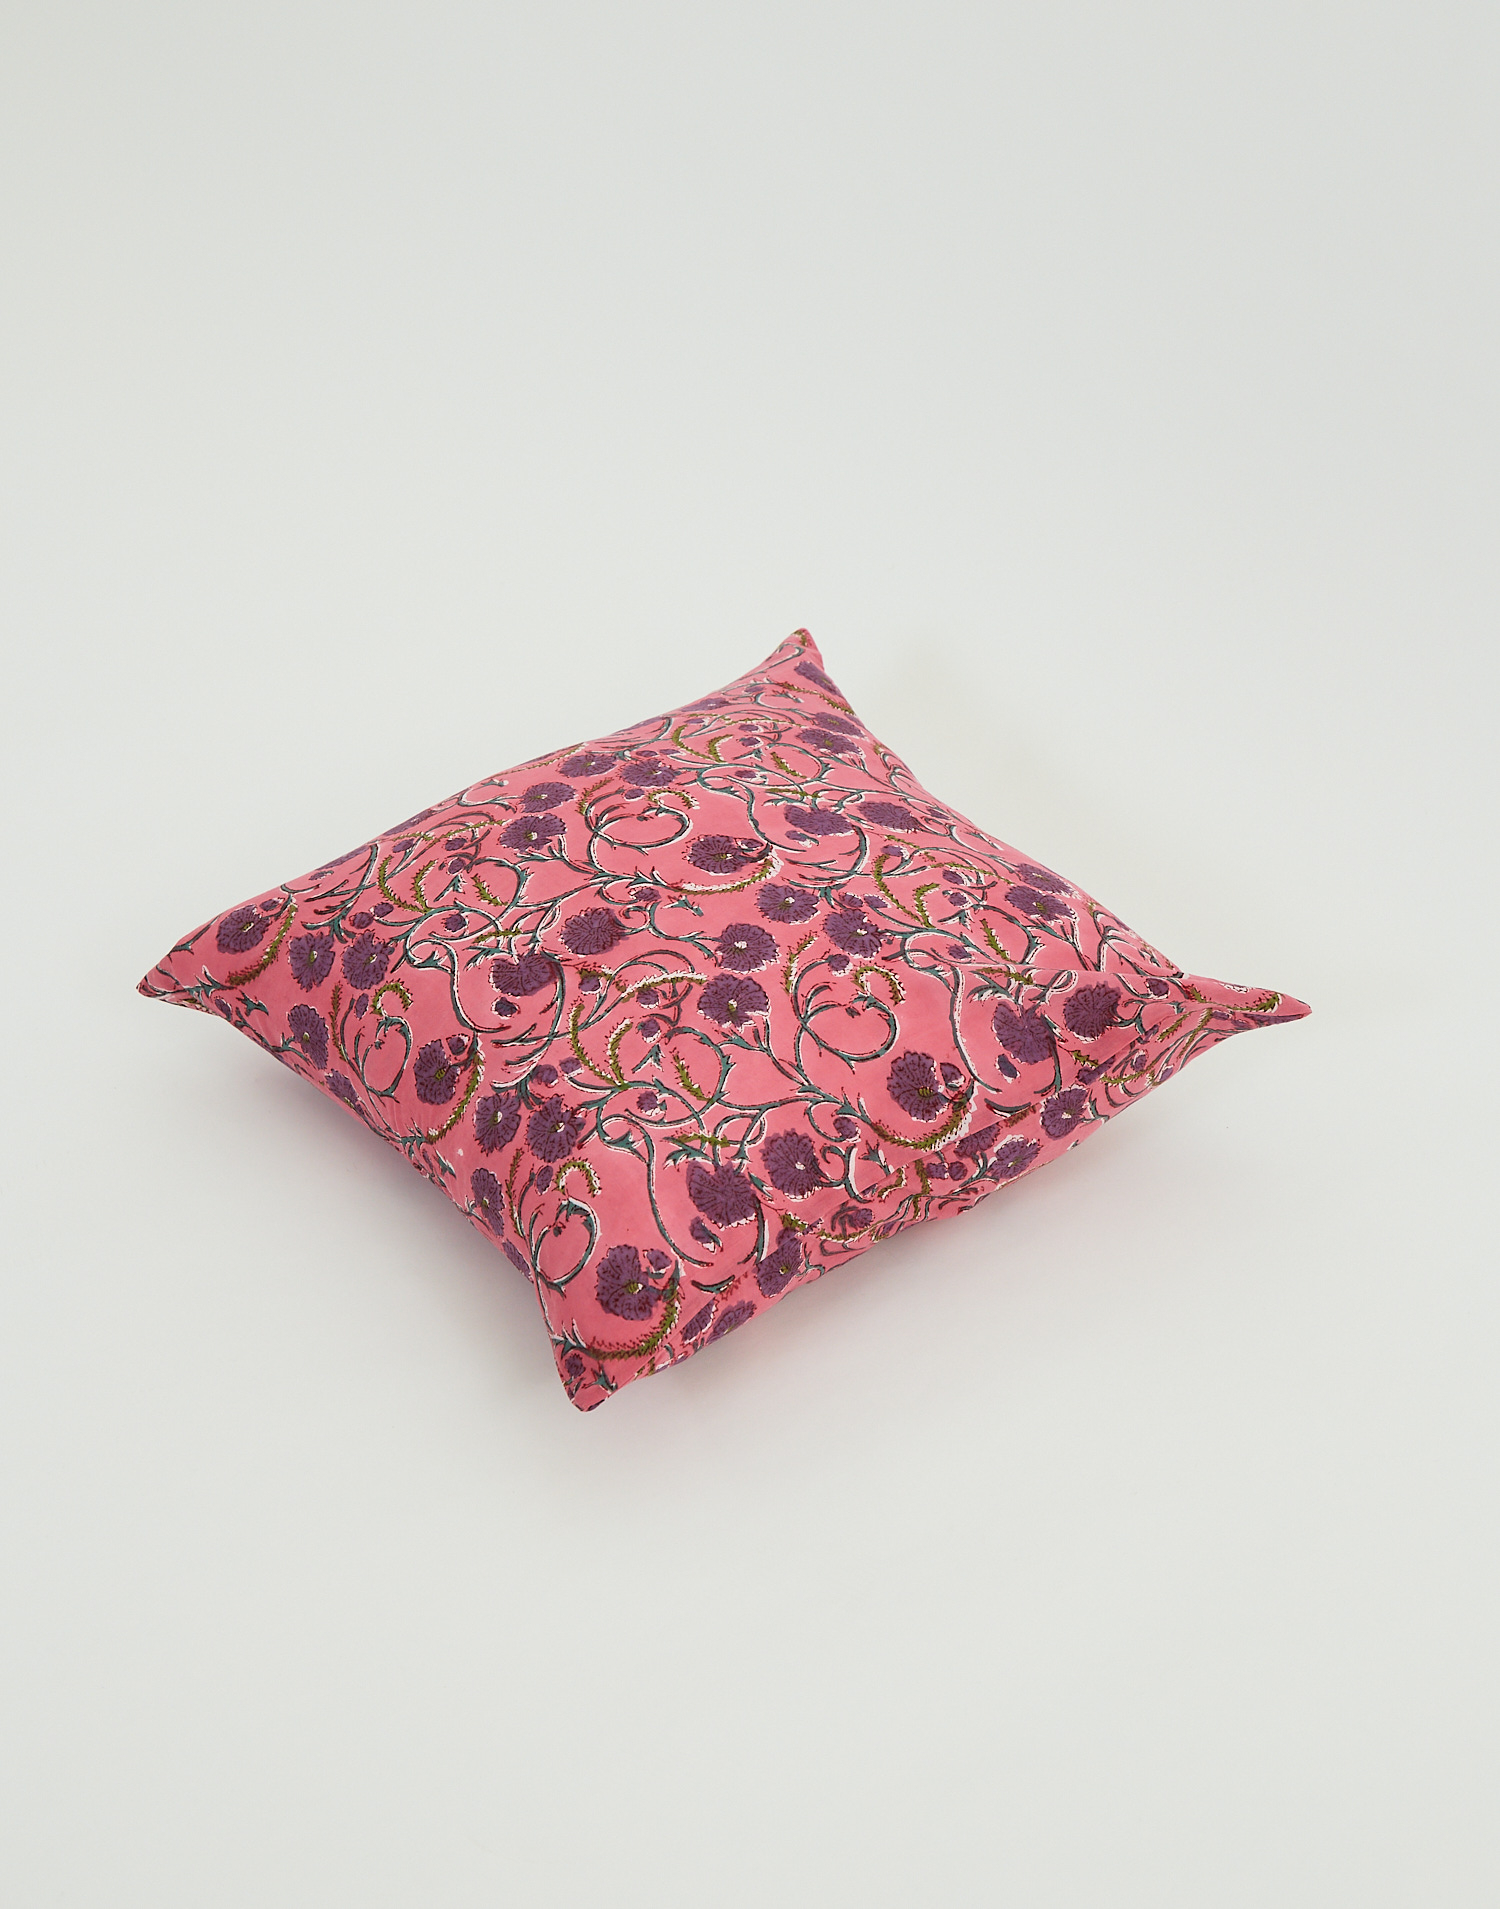 Indian print cushion cover 45x45